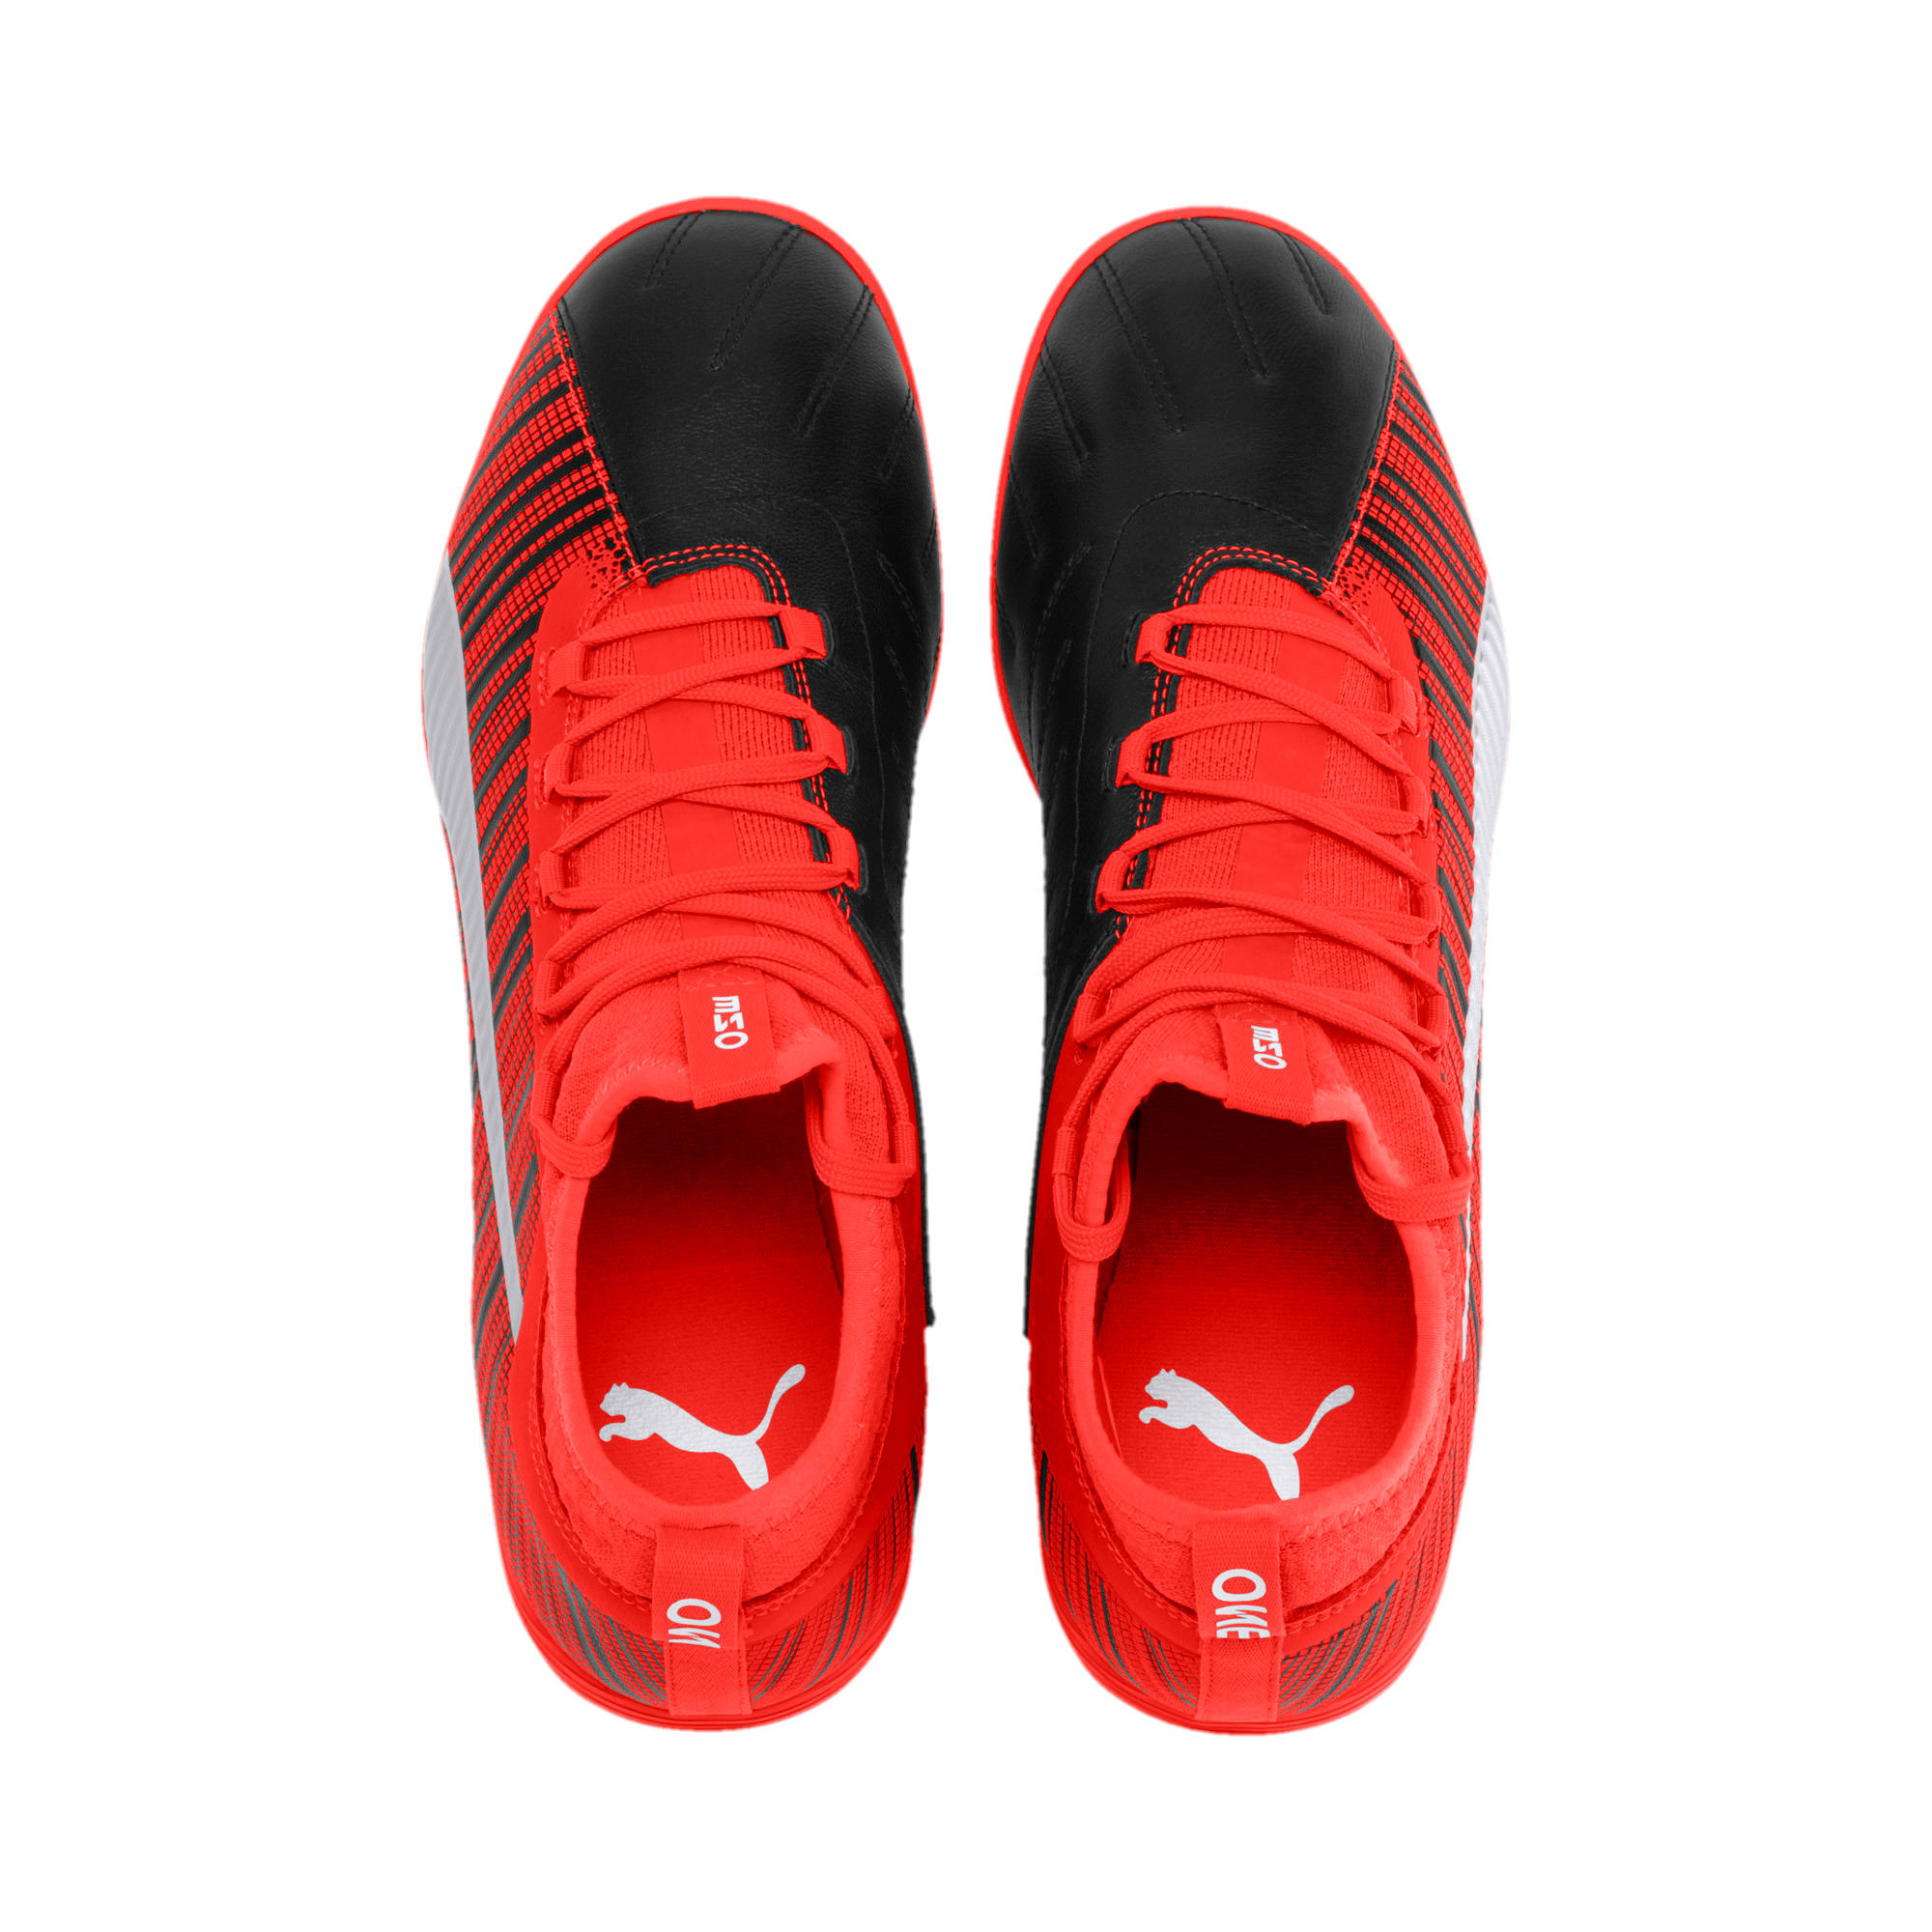 Thumbnail 7 of Chaussure de foot PUMA ONE 5.3 IT, Black-Nrgy Red-Aged Silver, medium